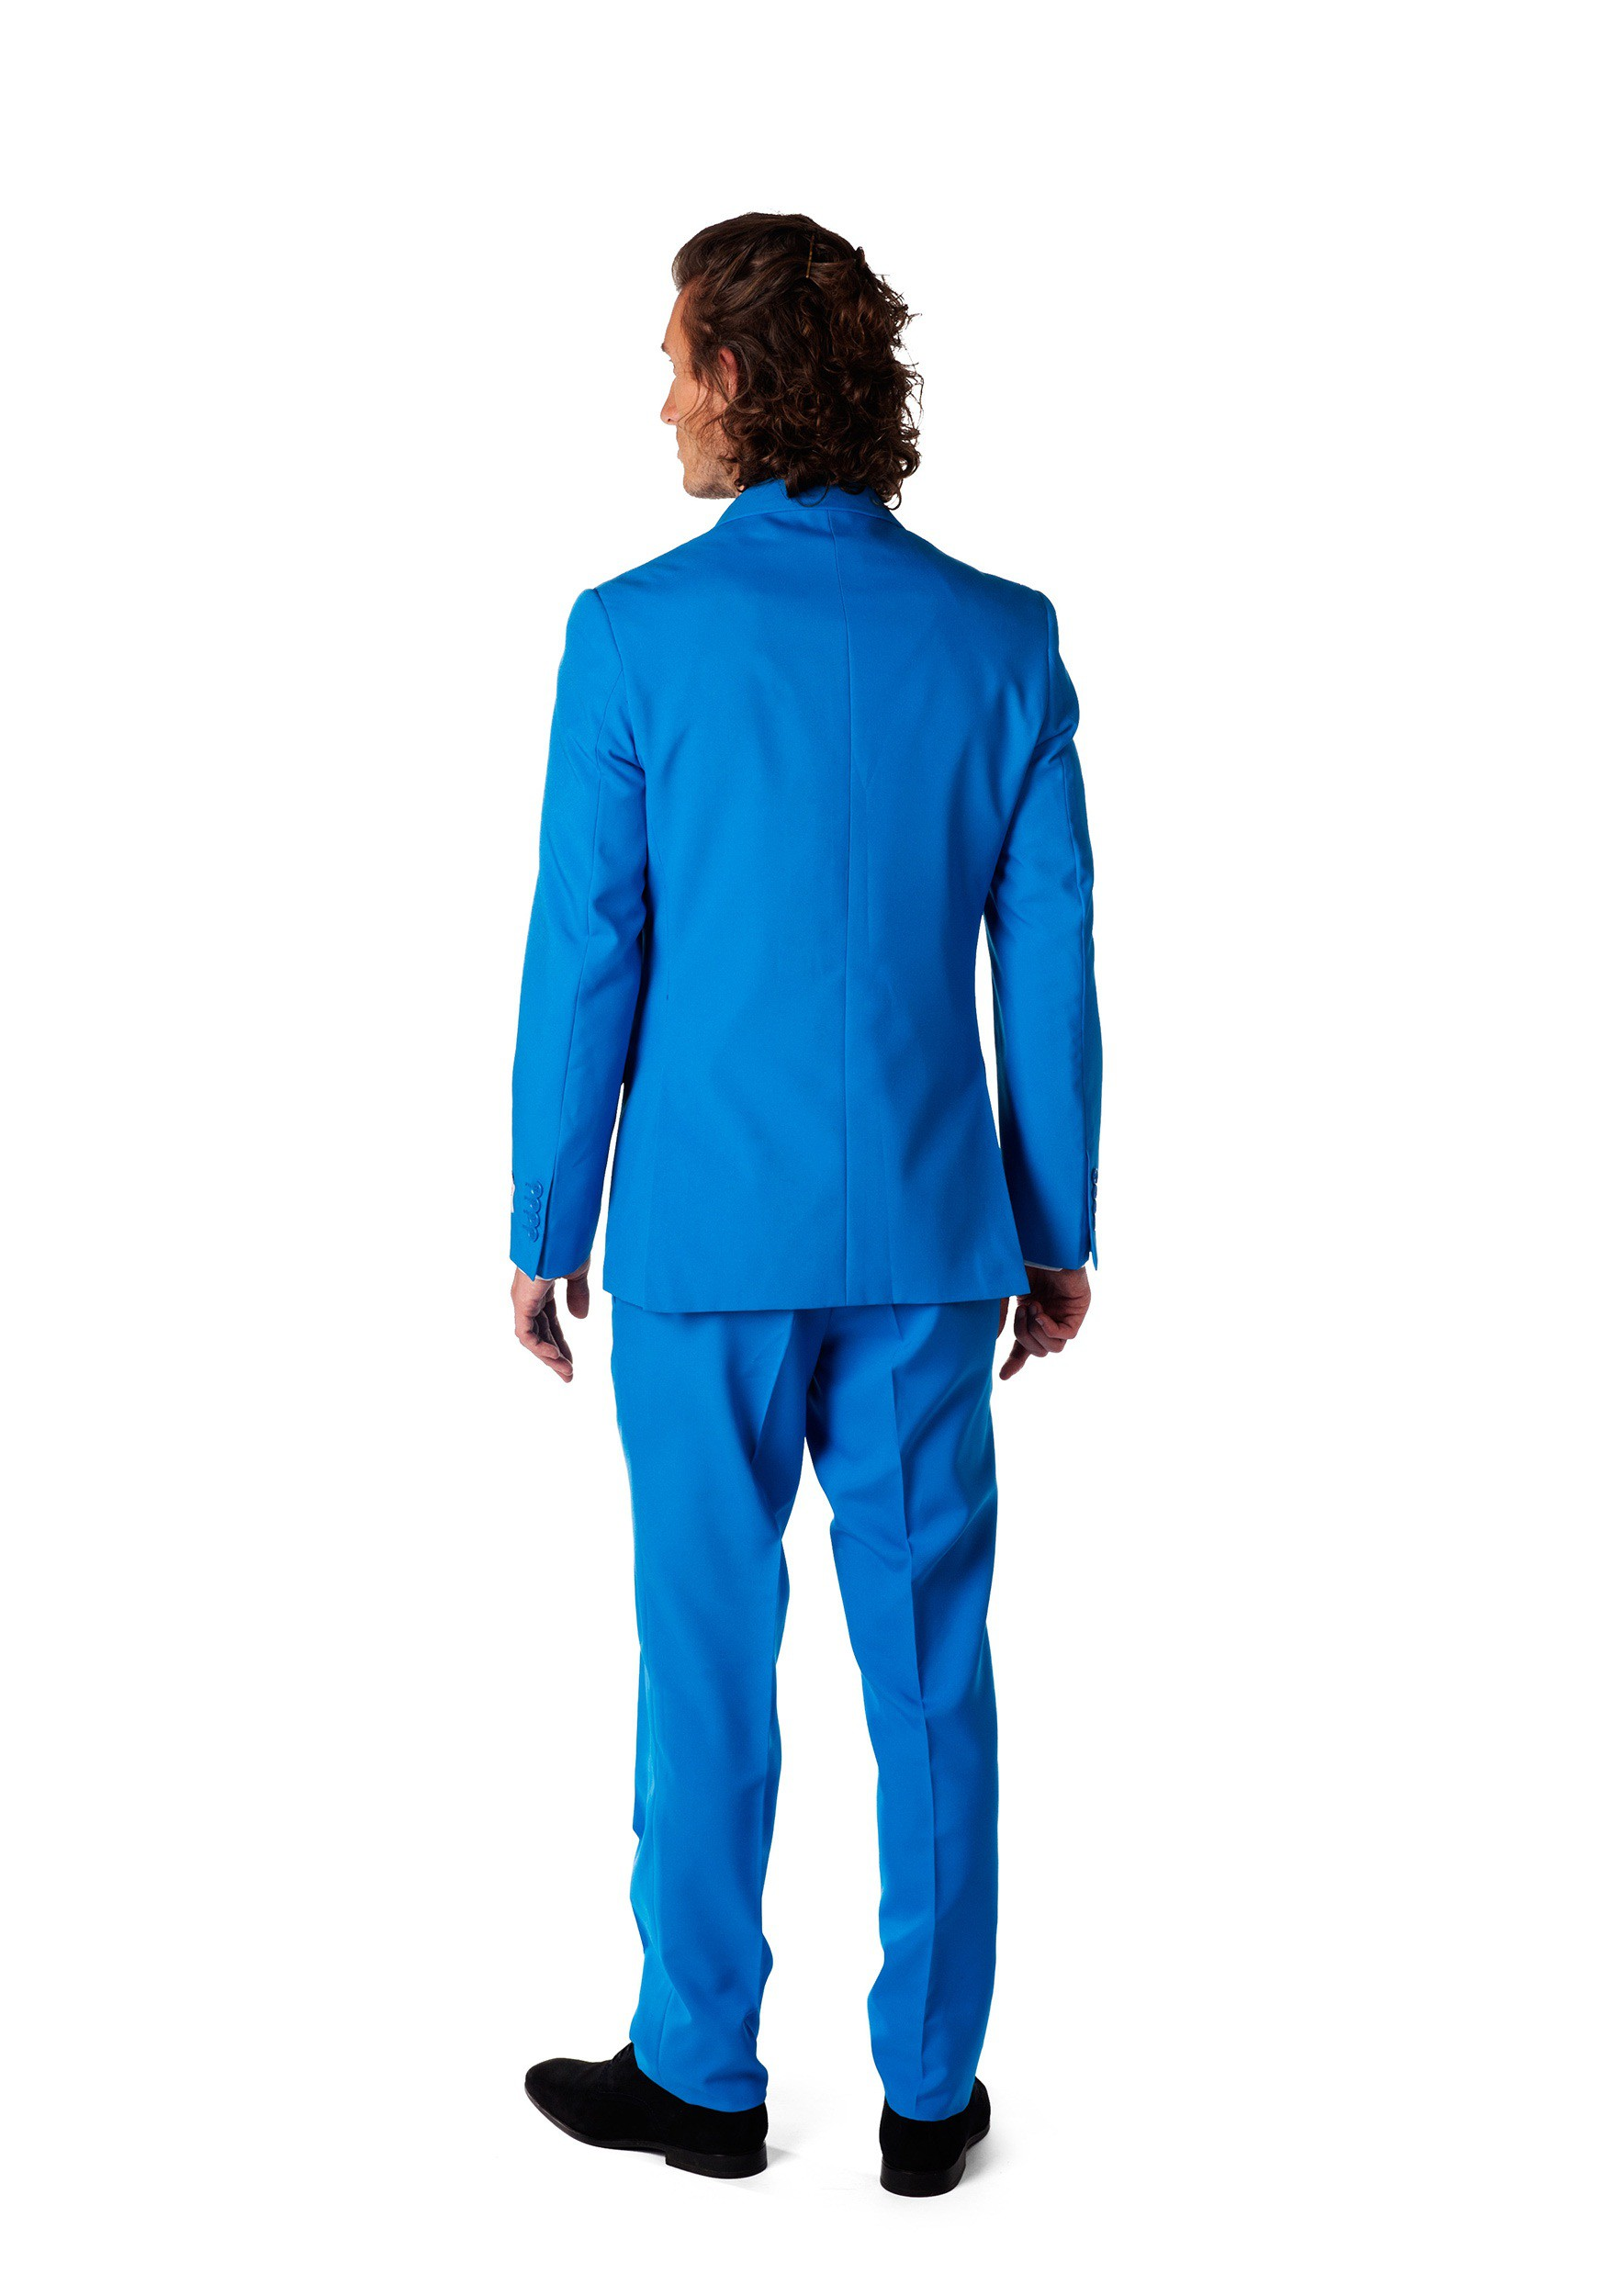 OppoSuits Solid Color Party Suits for Men Blue Steel Jacket And Tie Abito da Uomo Full Suit: Includes Pants